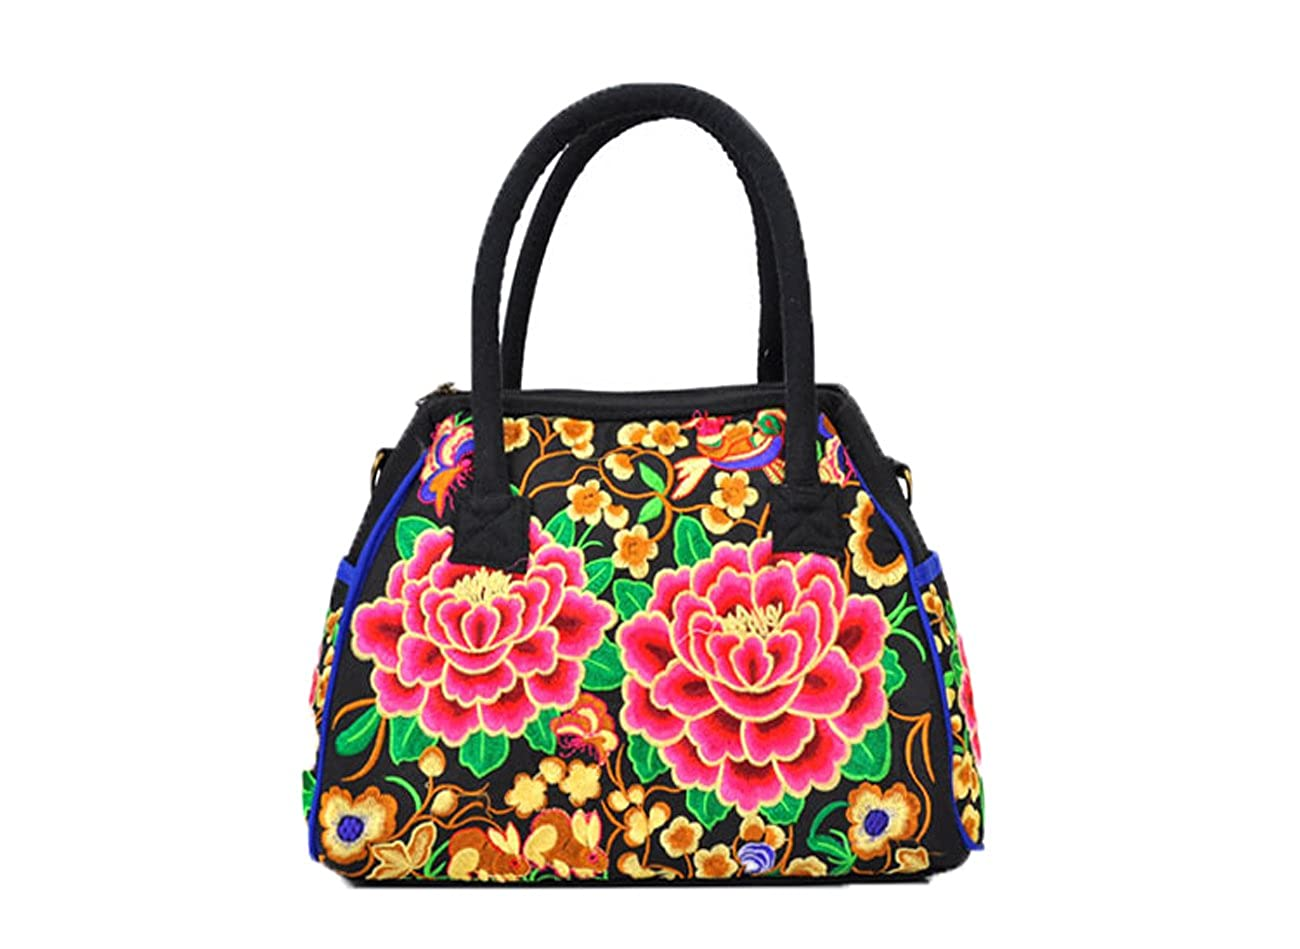 Embroidered Bag Handbag...